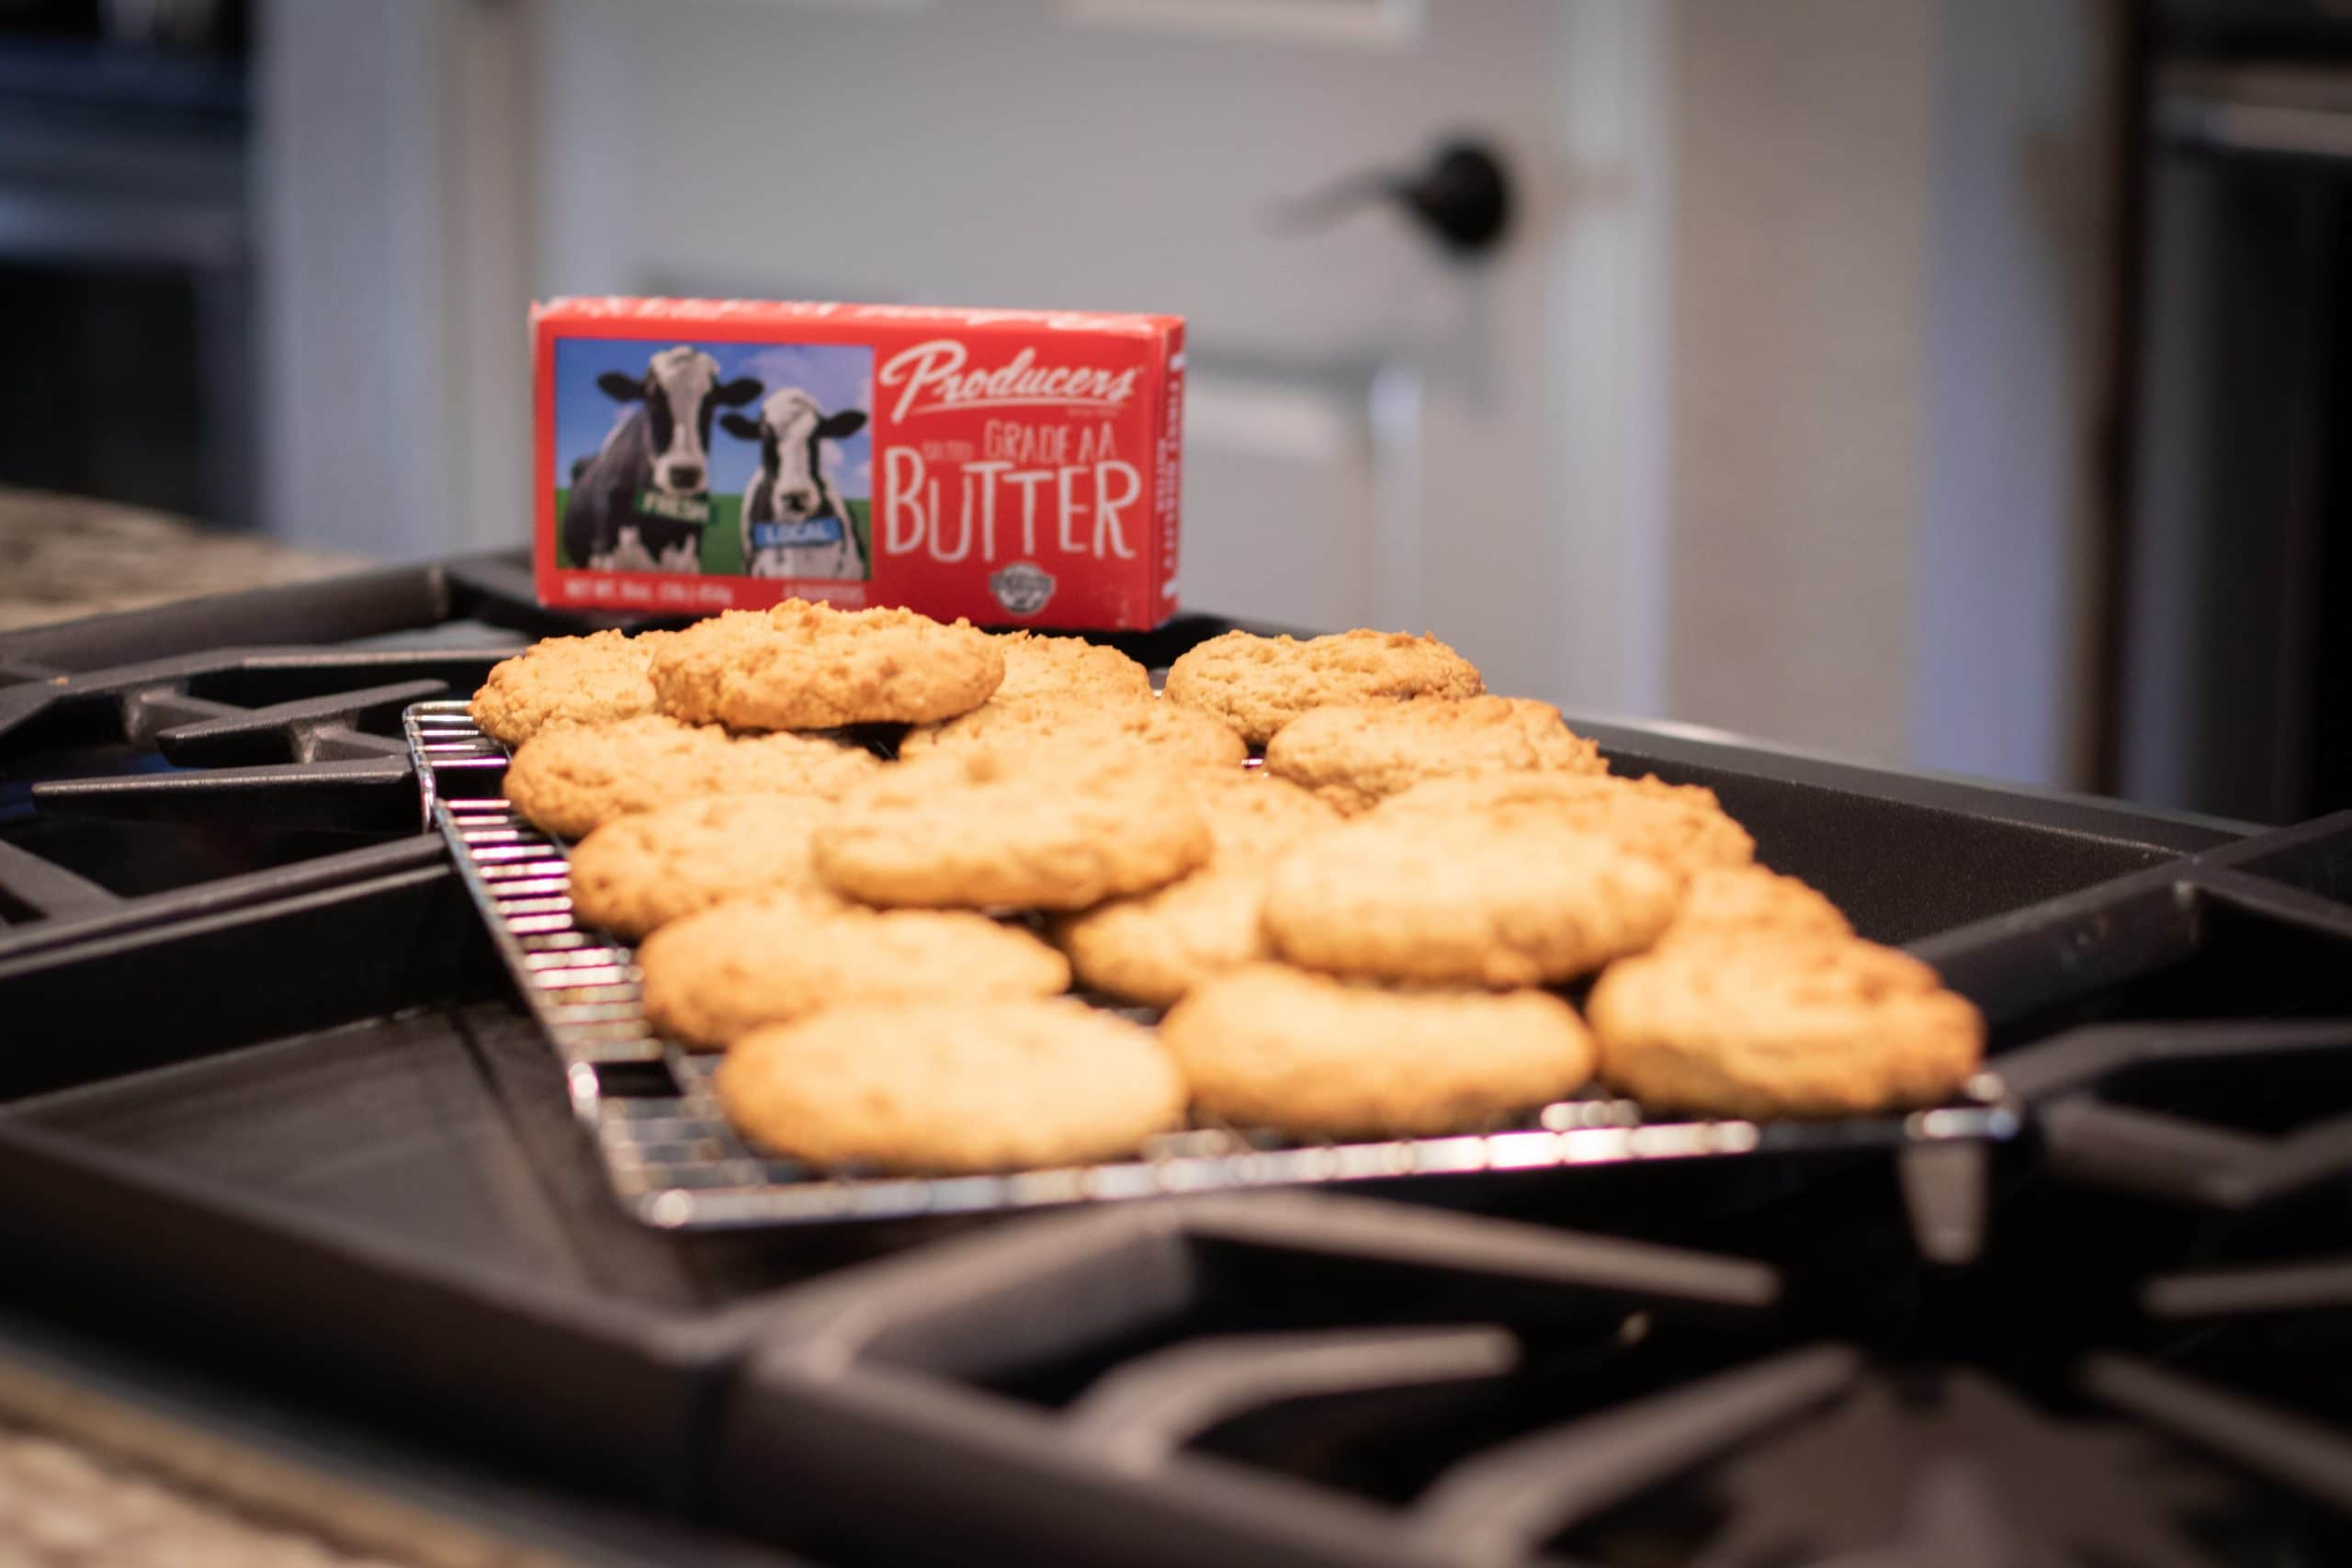 a cooling rack of cookies from the oatmeal cookie recipe with a red box of butter from Producers Dairy